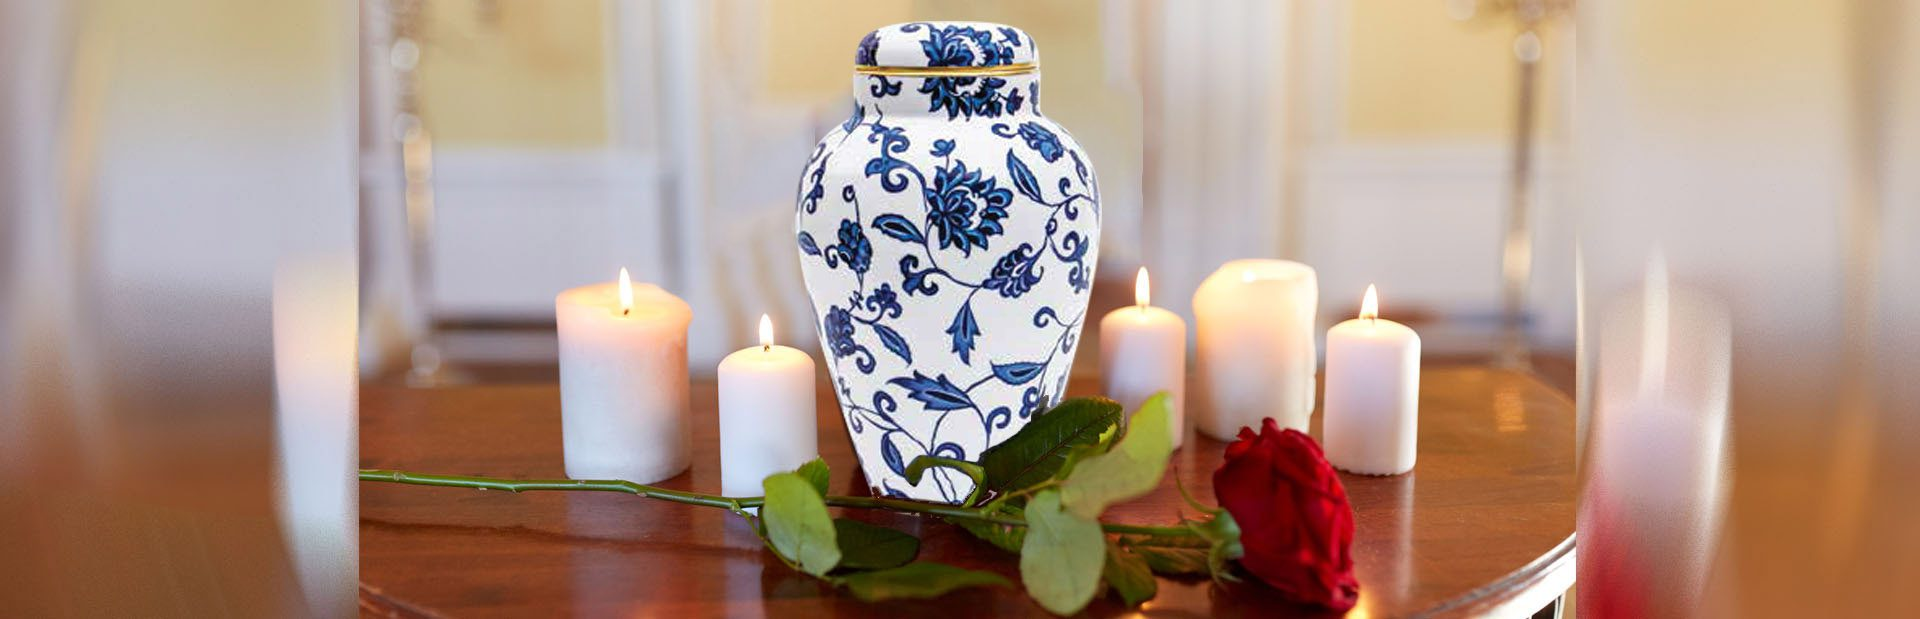 red rose and cremation urn